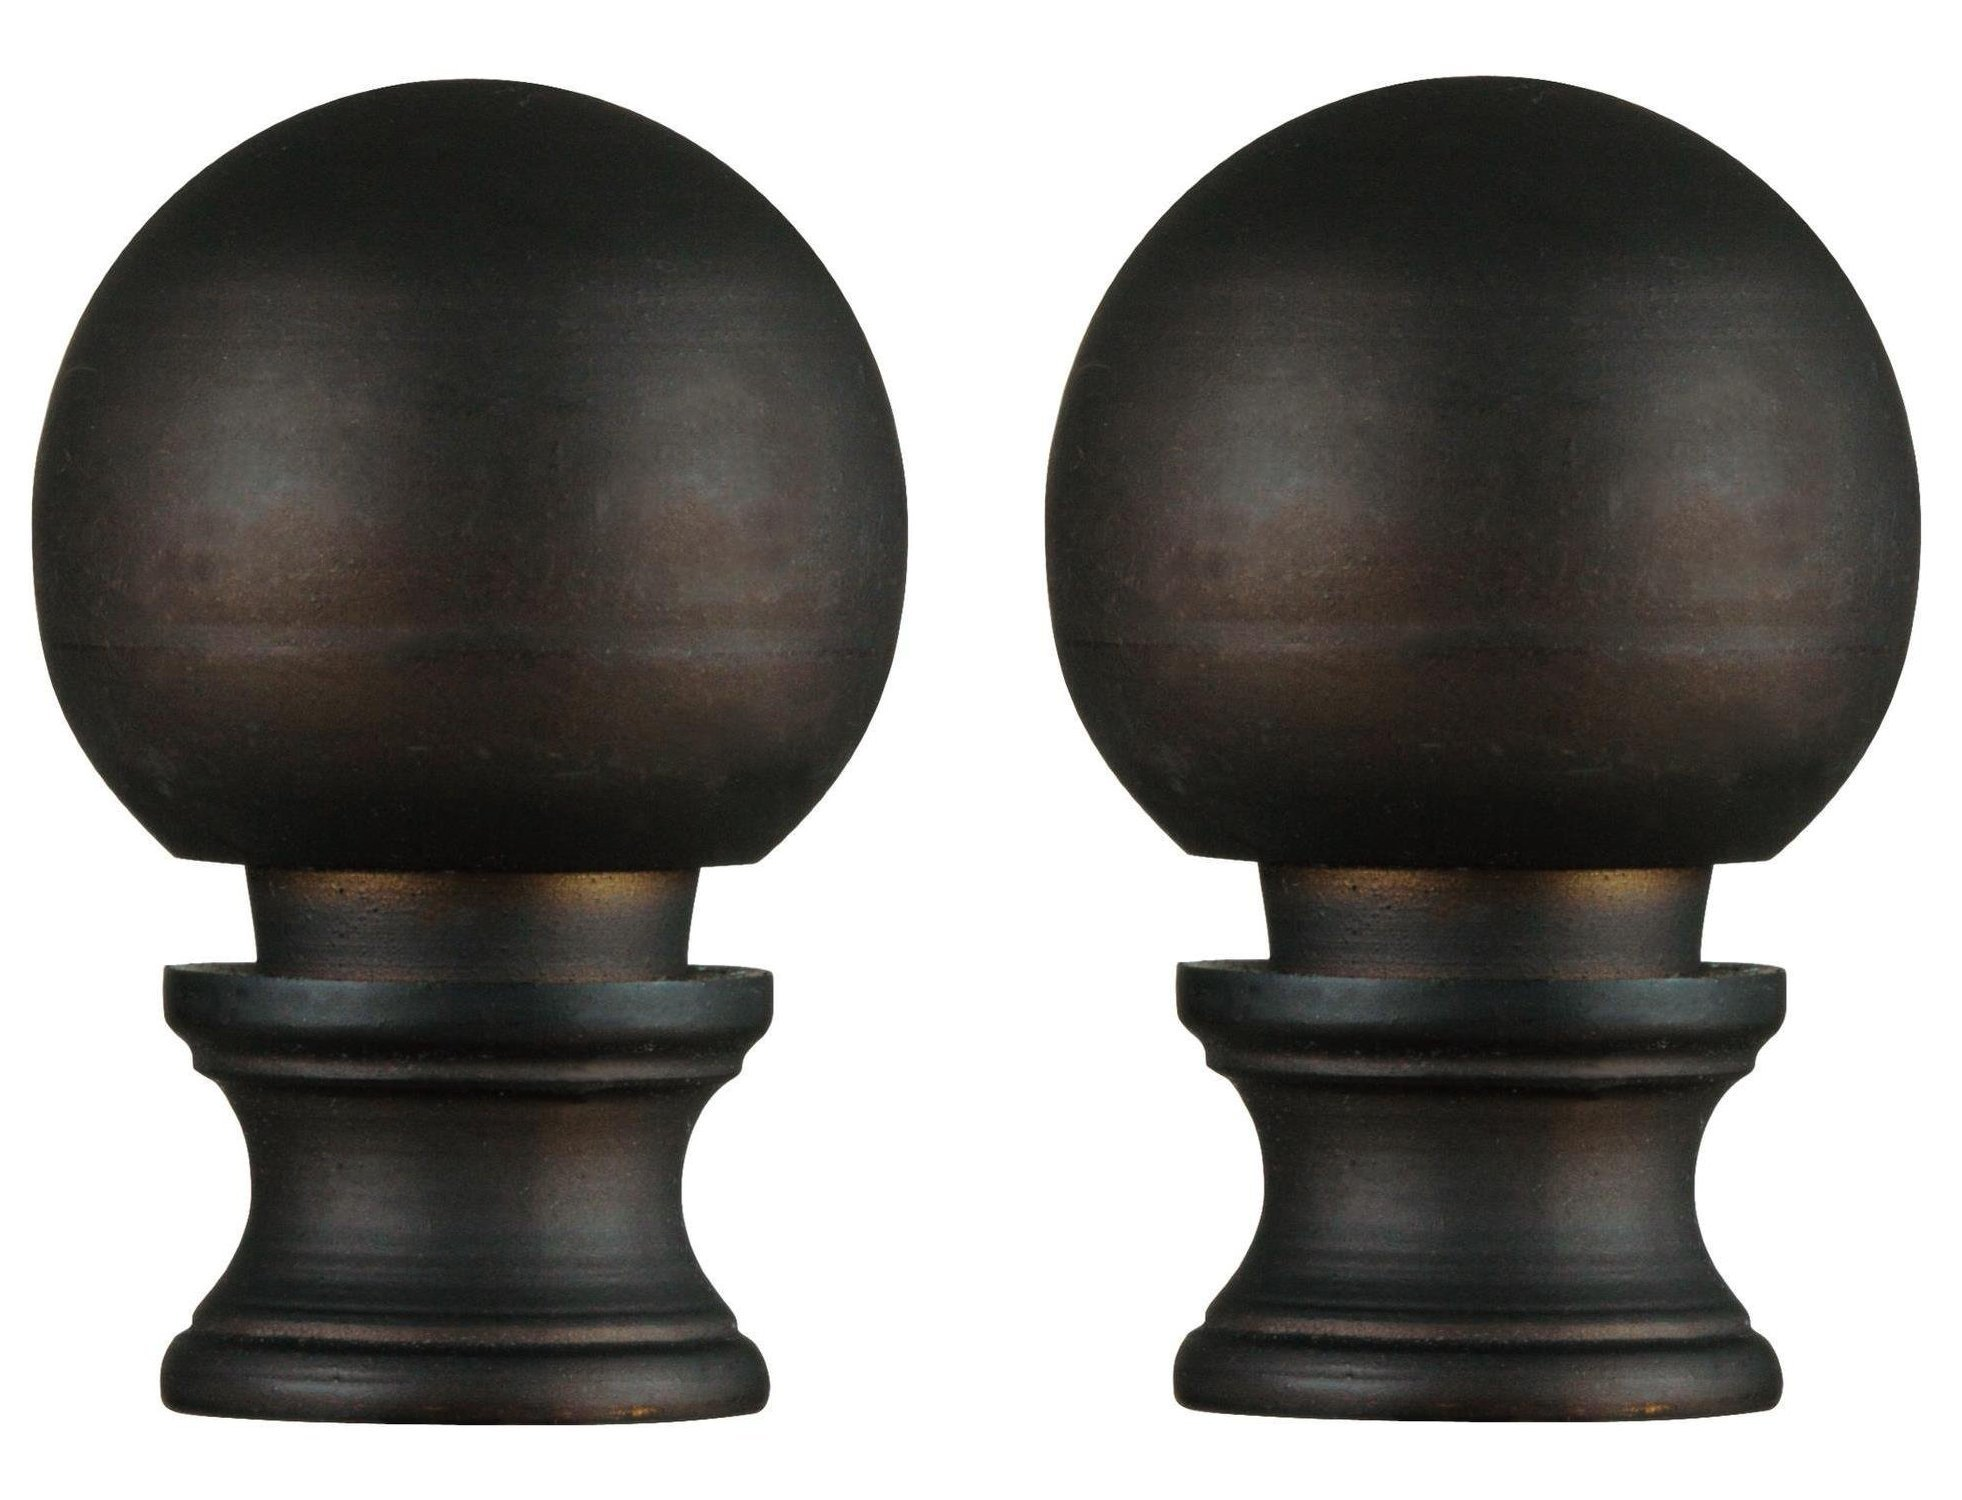 Oil Rubbed Bronze Finish Ball Lamp Finial (2-Pack)